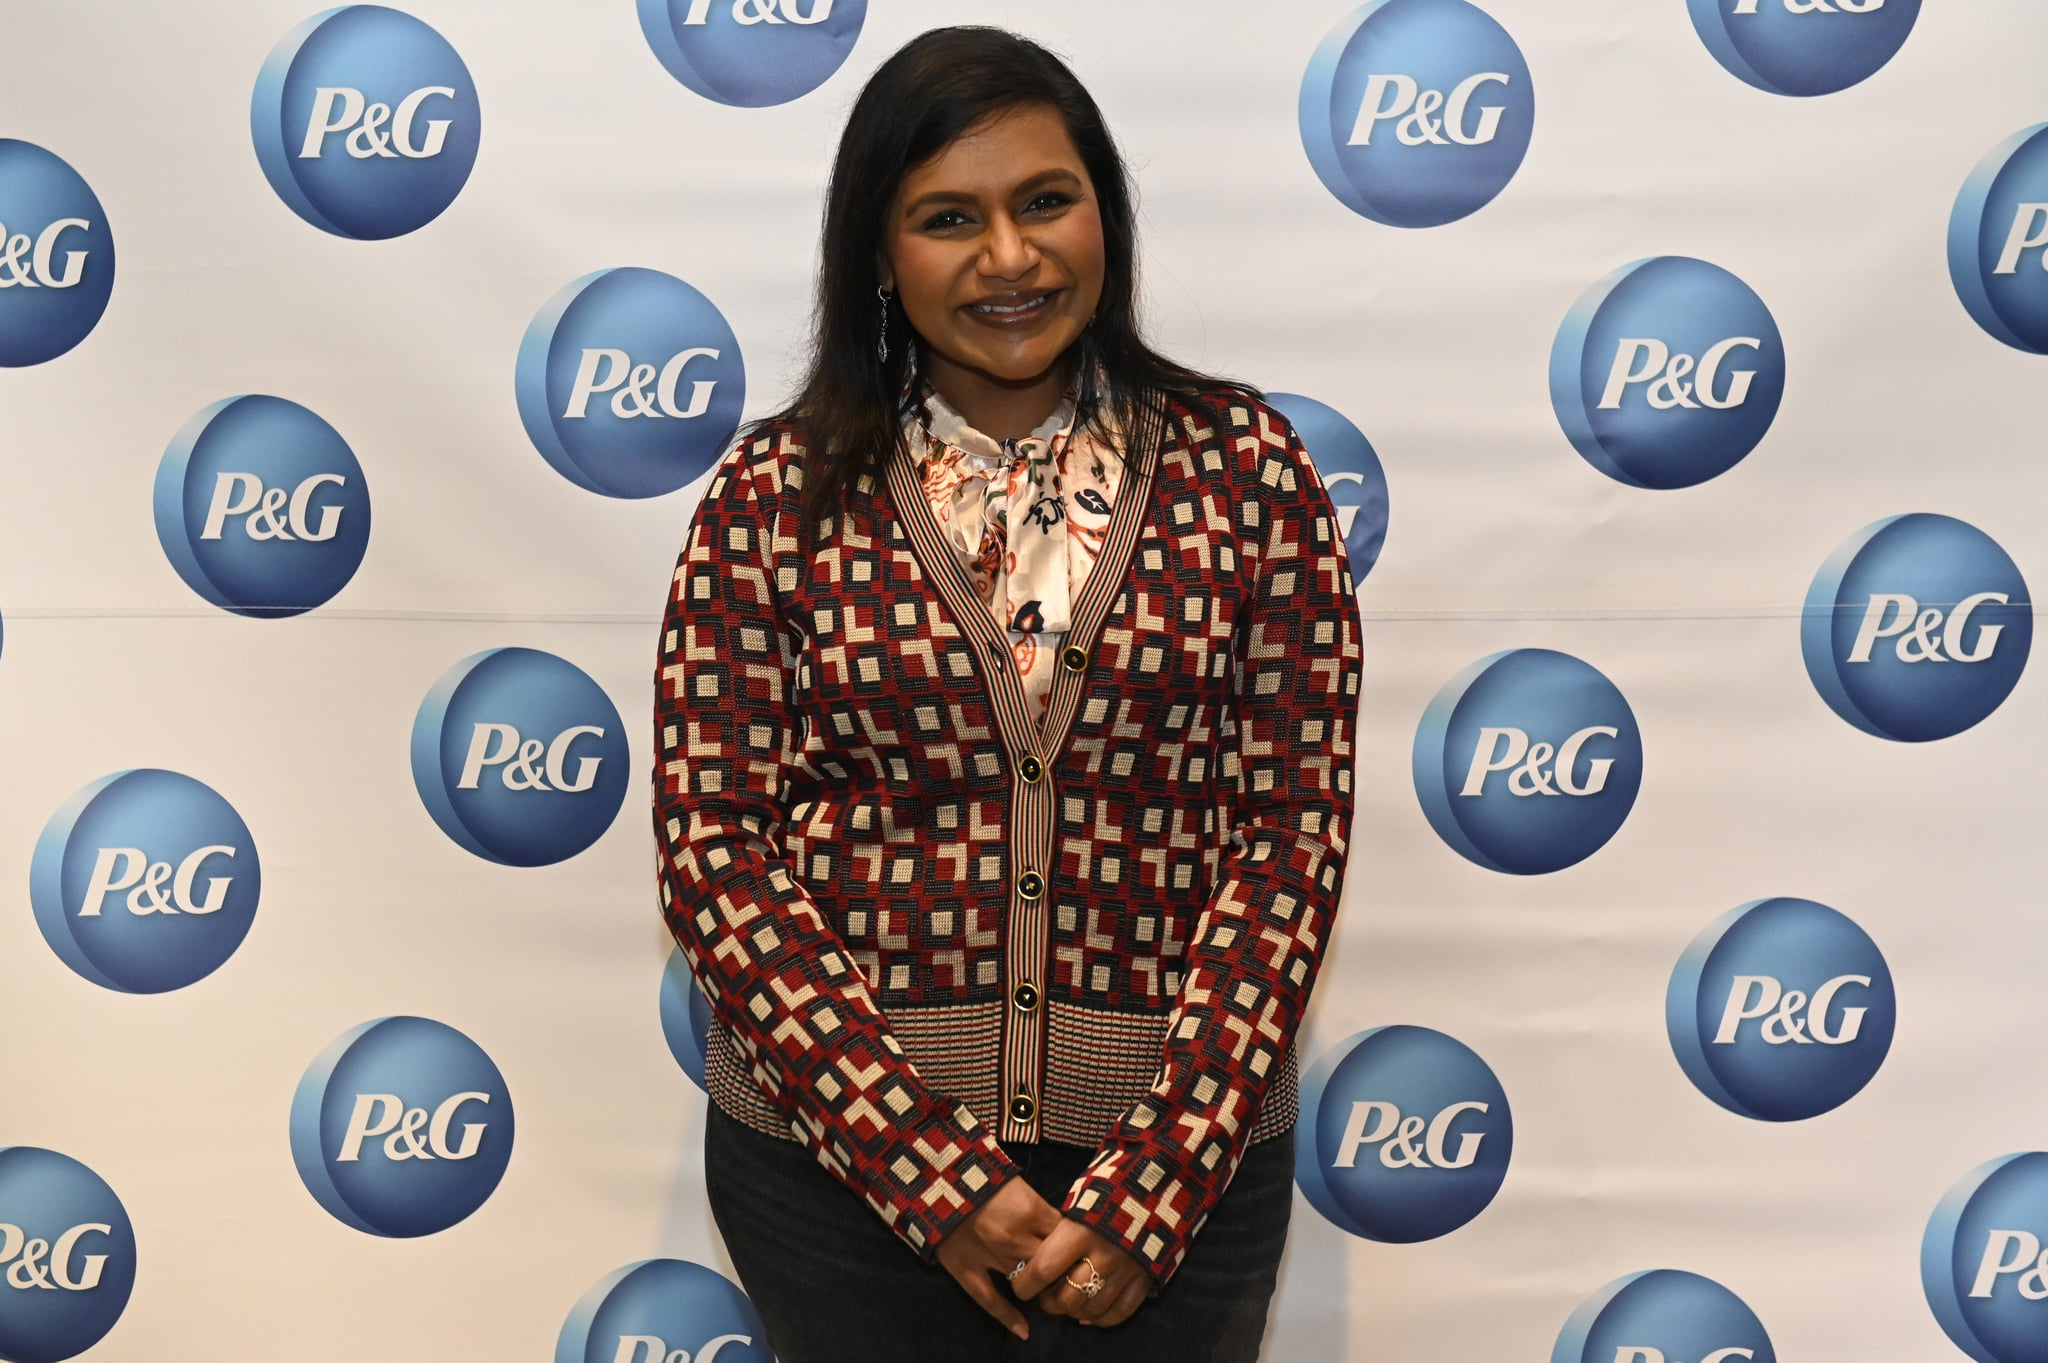 CINCINNATI, OHIO - MARCH 04: Mindy Kaling attends the P&G #WeSeeEqual Forum held at Proctor & Gamble on March 04, 2020 in Cincinnati, Ohio. (Photo by Duane Prokop/Getty Images for Procter & Gamble)